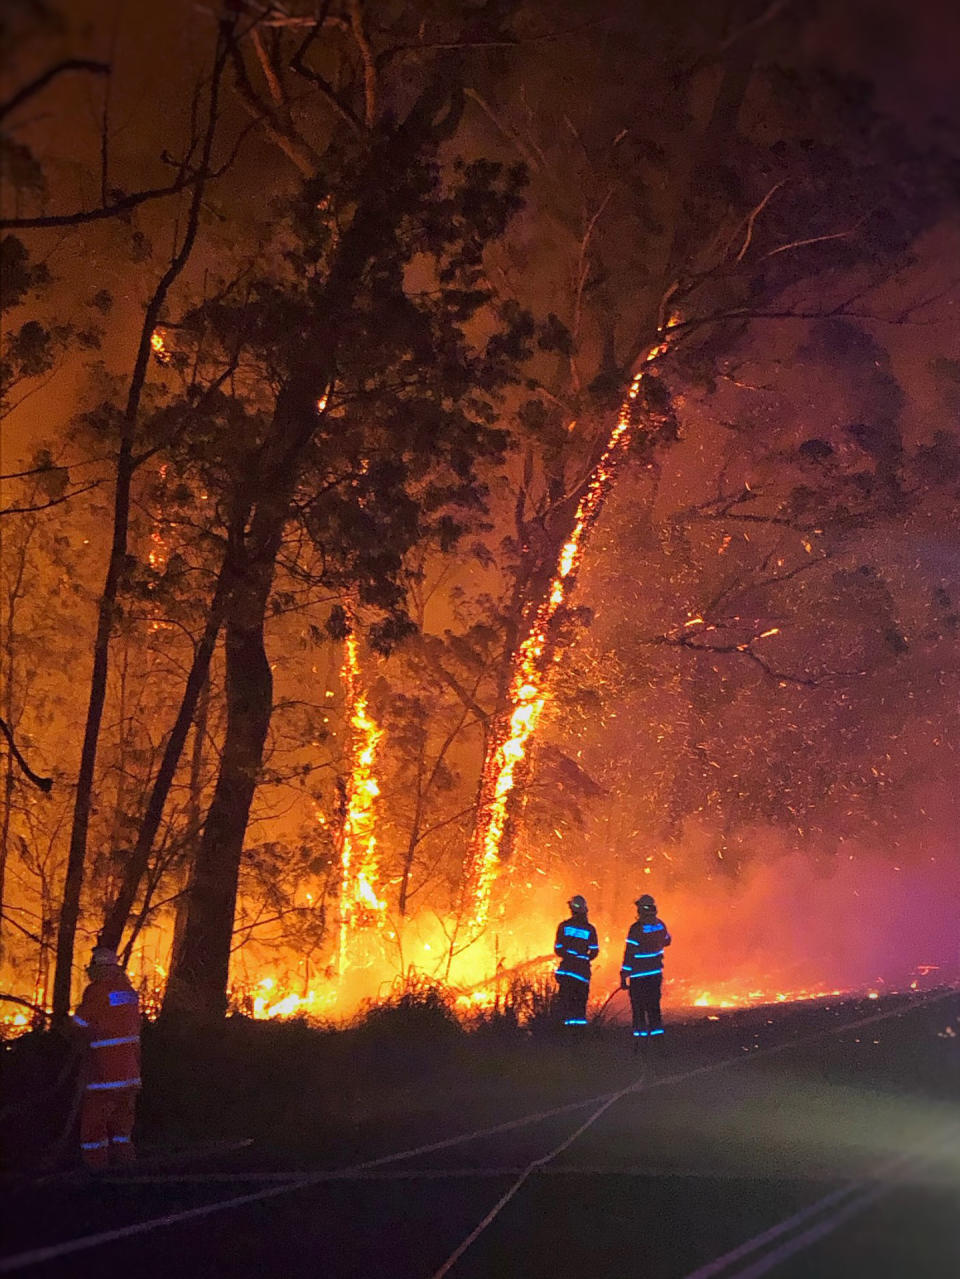 But 24 fires still remain burning in NSW, all of which are south of Sydney.